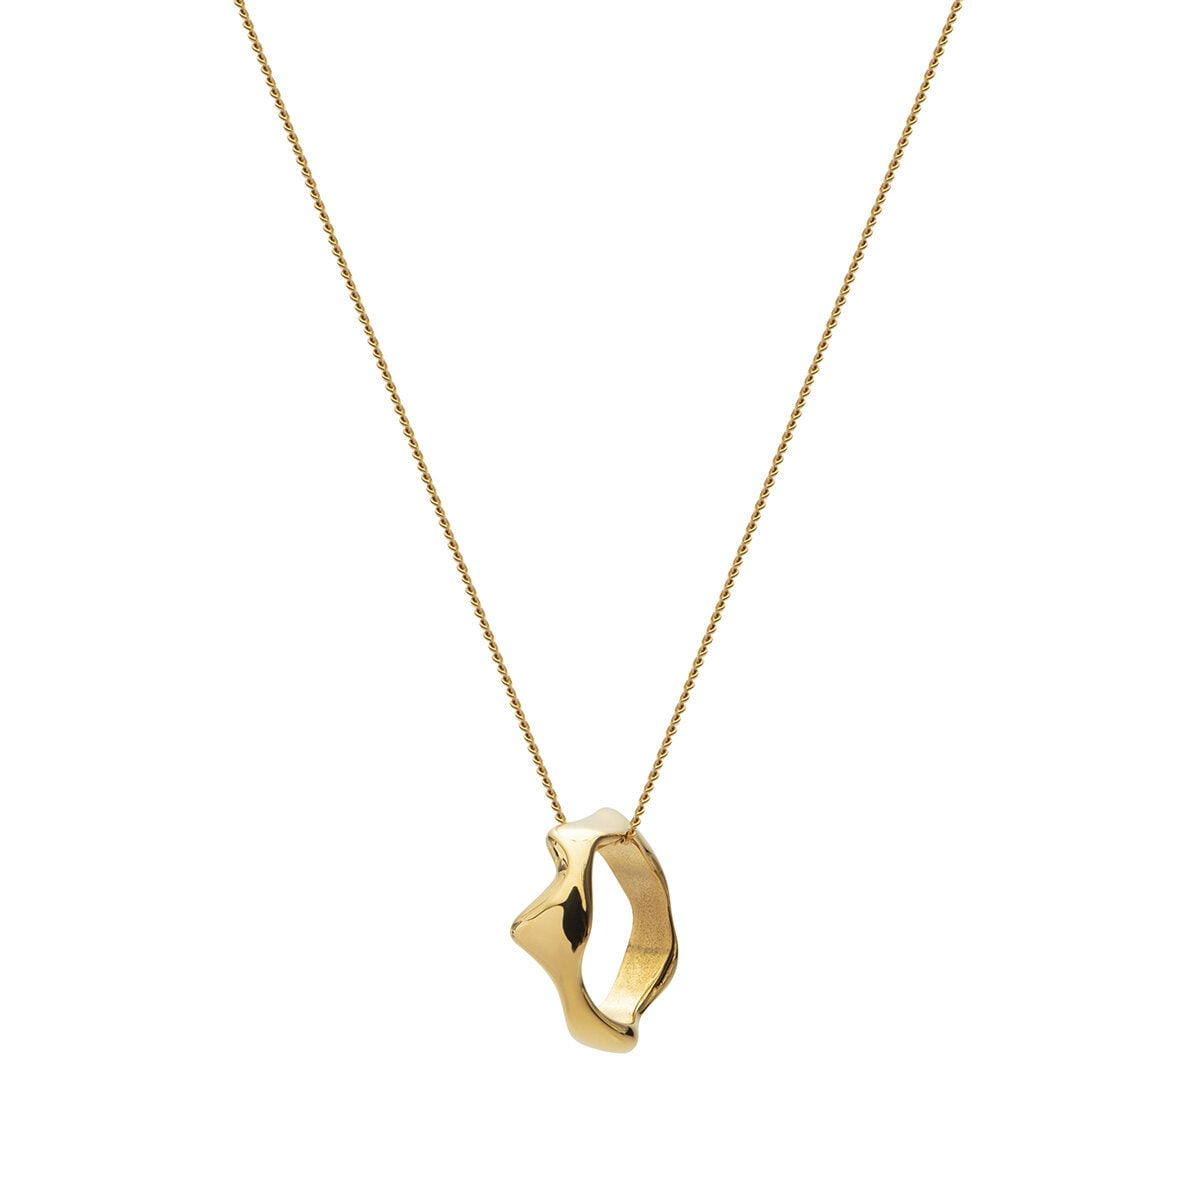 Chunky Necklace - Gold Plated